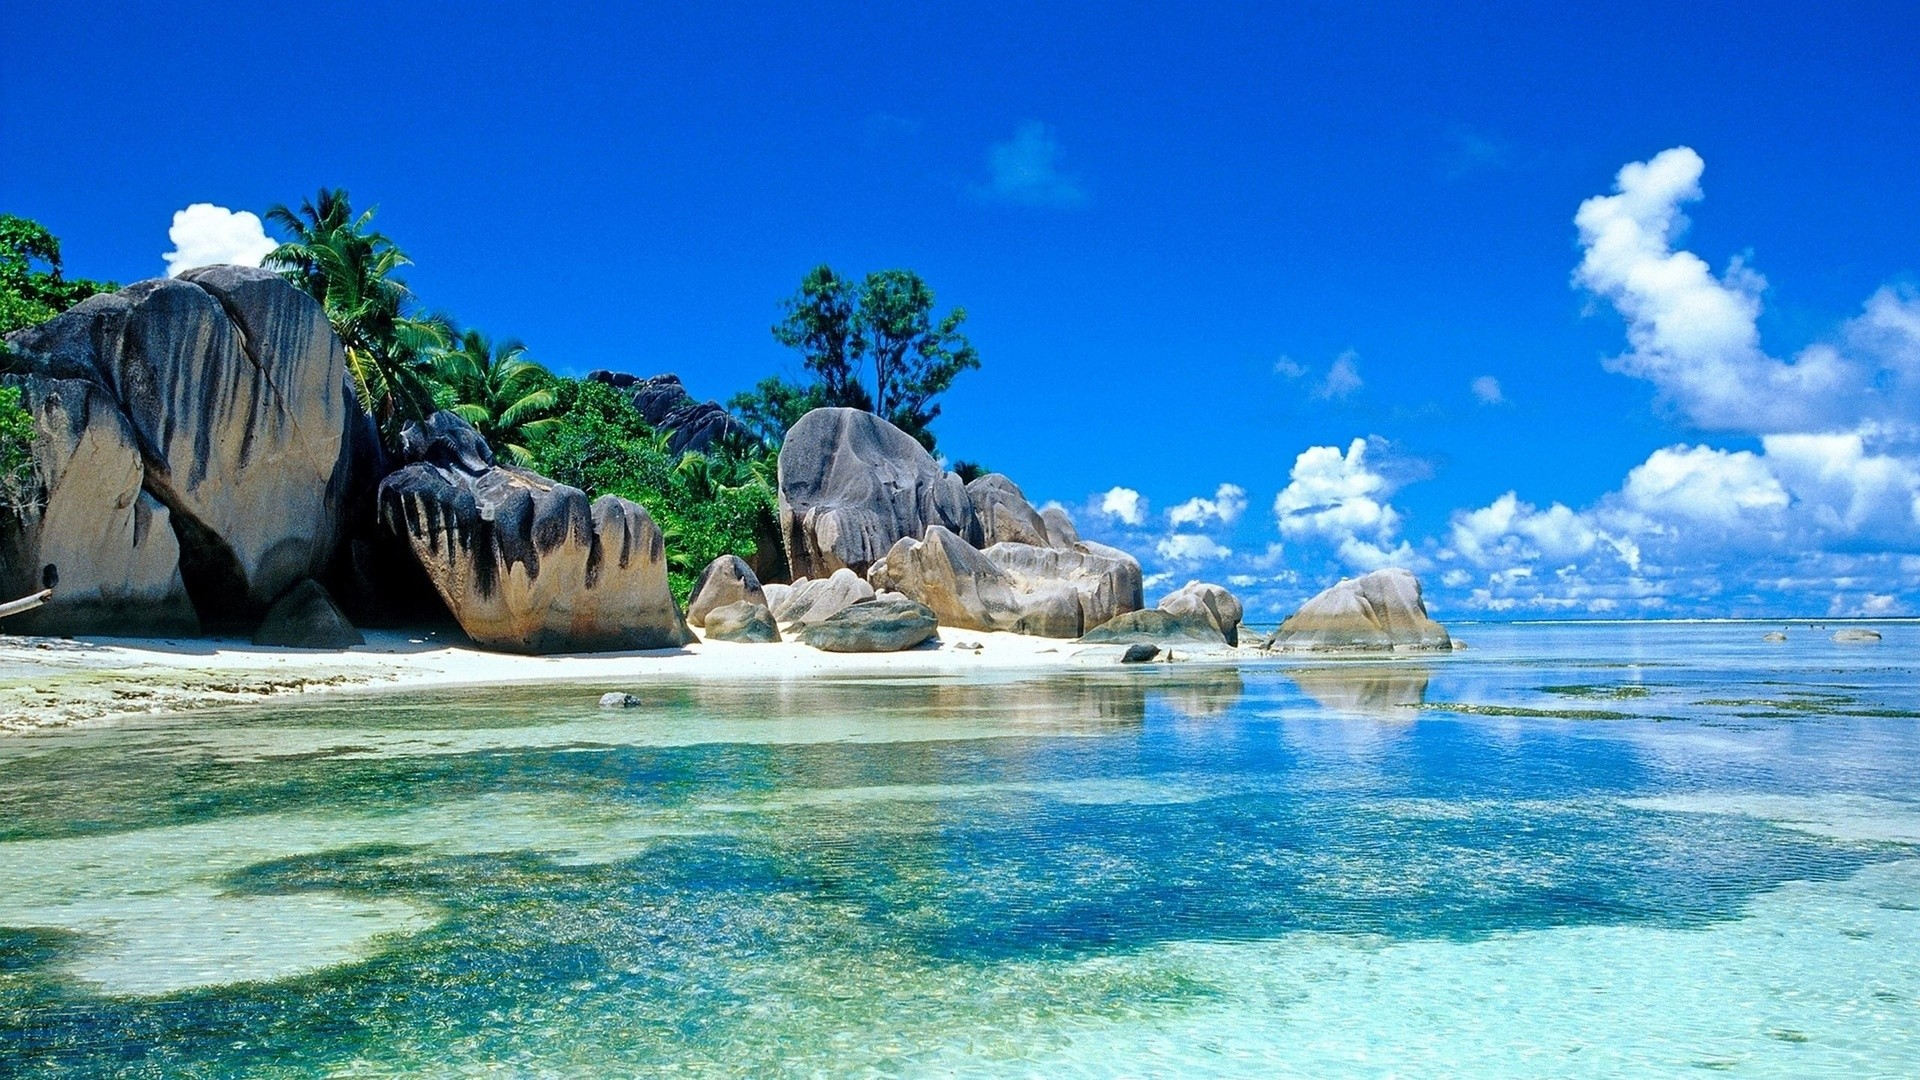 Free Beach Screensavers And Wallpapers Tropical Beach With Large Rocks .